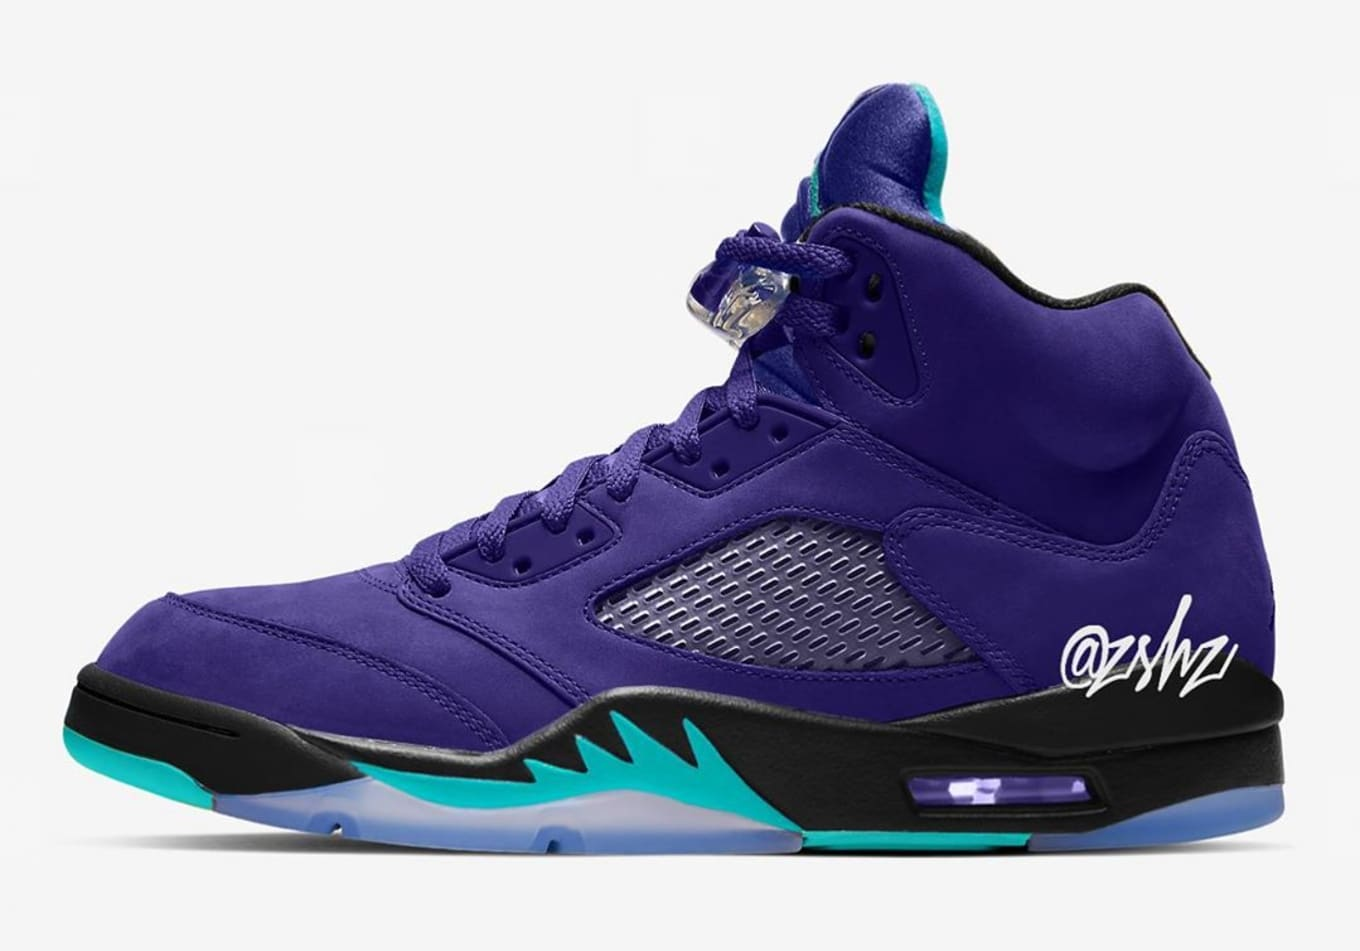 d66bd7a033 Air Jordan 5 'Grape Ice' Grape Ice/Black-Clear-New Emerald 136027 ...